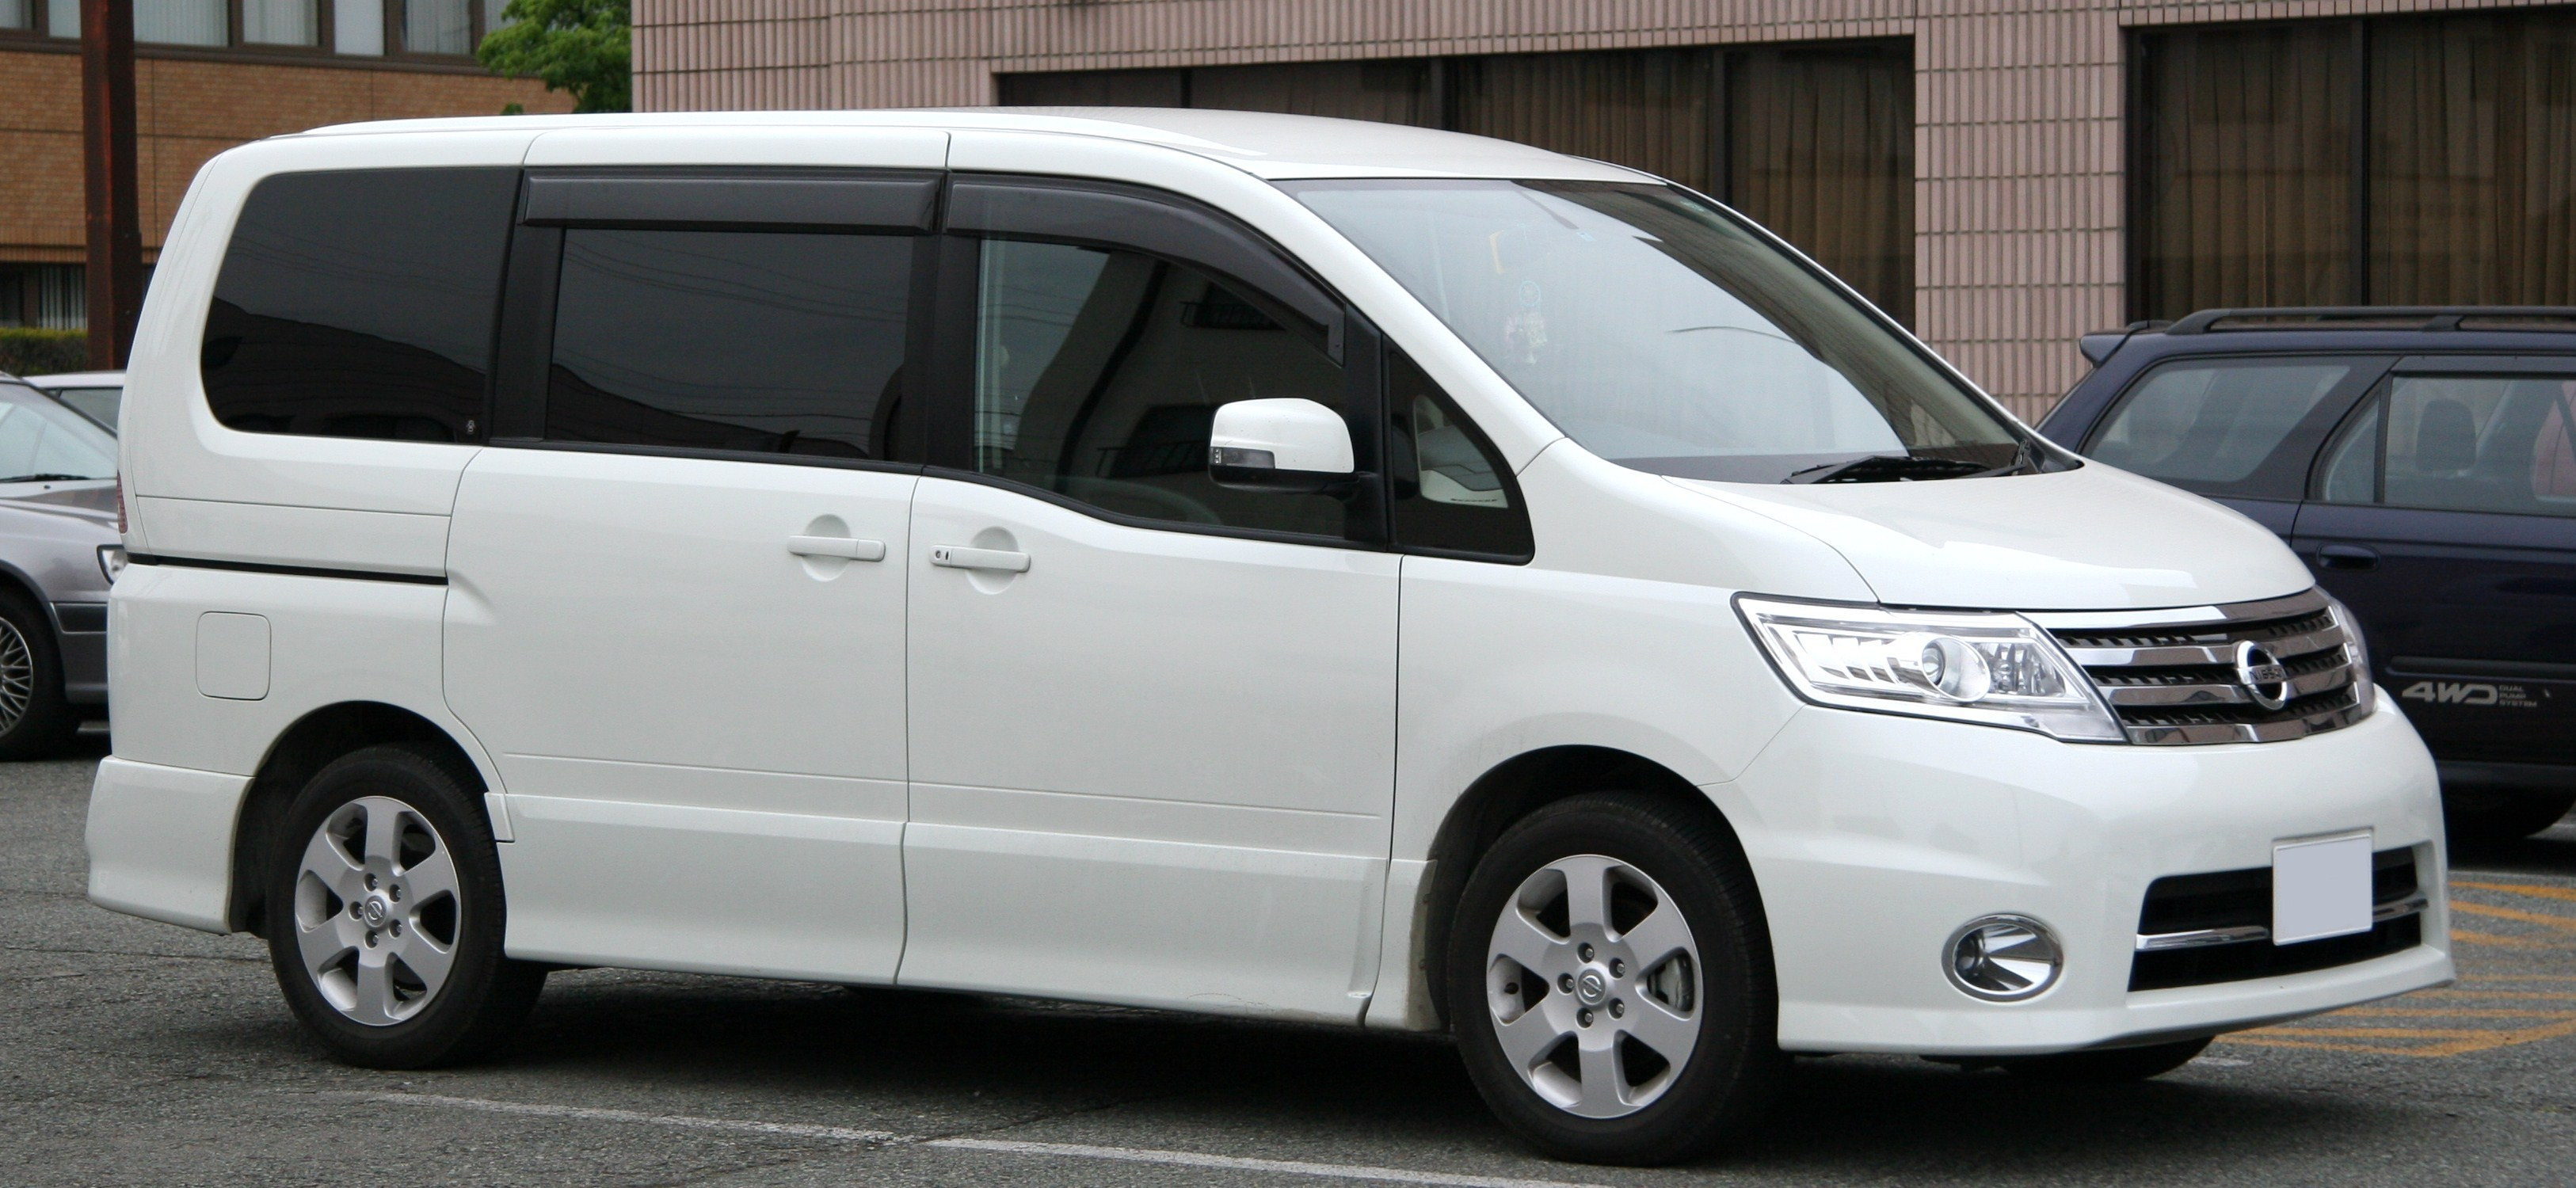 Nissan Serena photo 106166